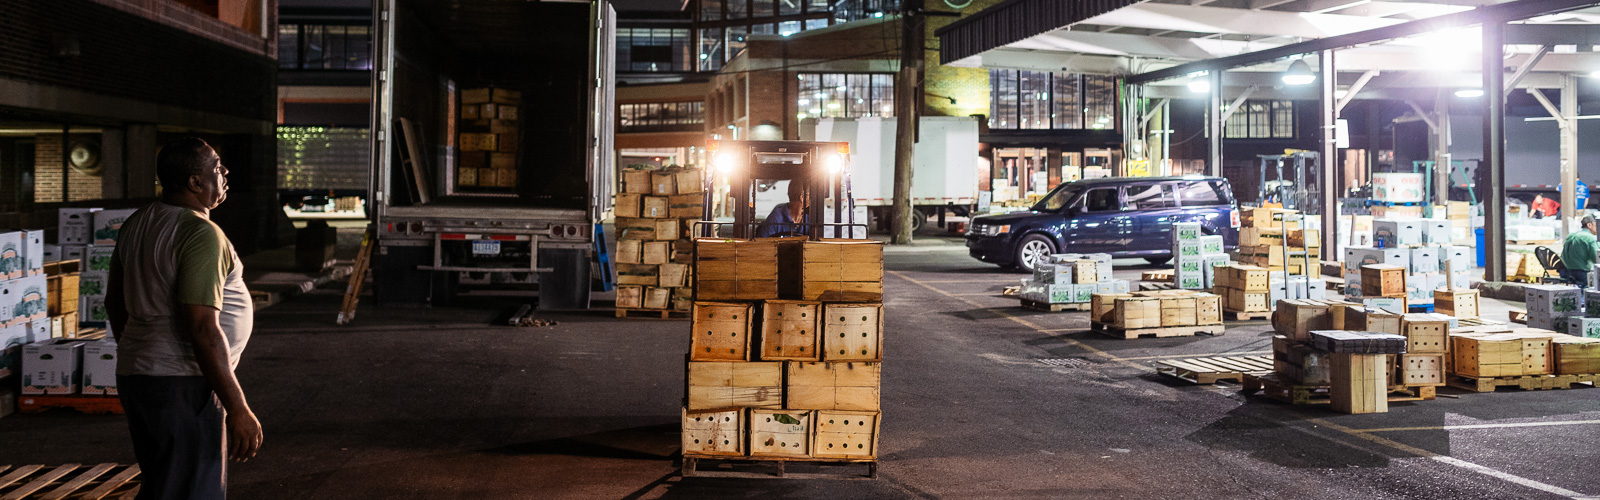 Wholesale night market at Eastern Market <span class='image-credits'>Nick Hagen</span>